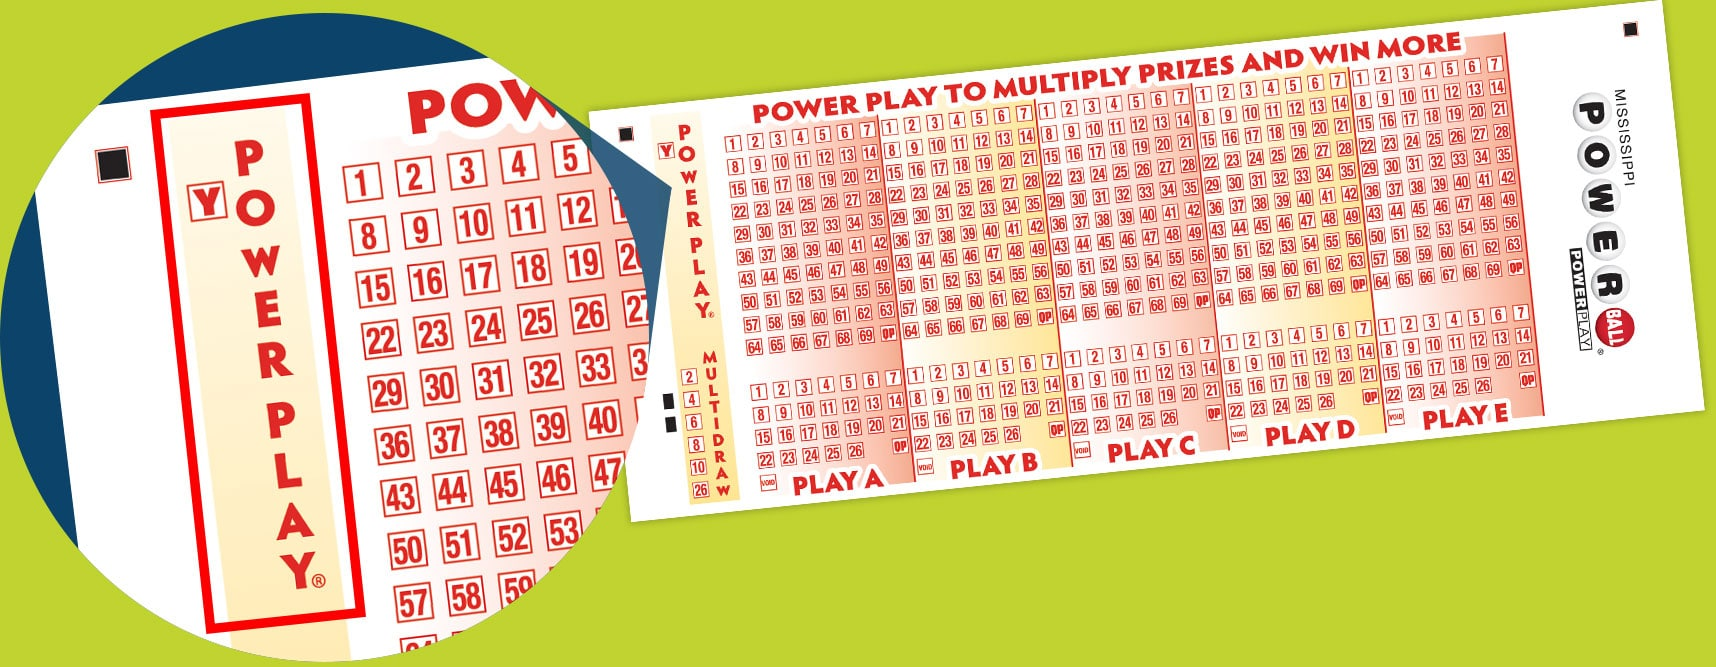 Powerball Mississippi Lottery